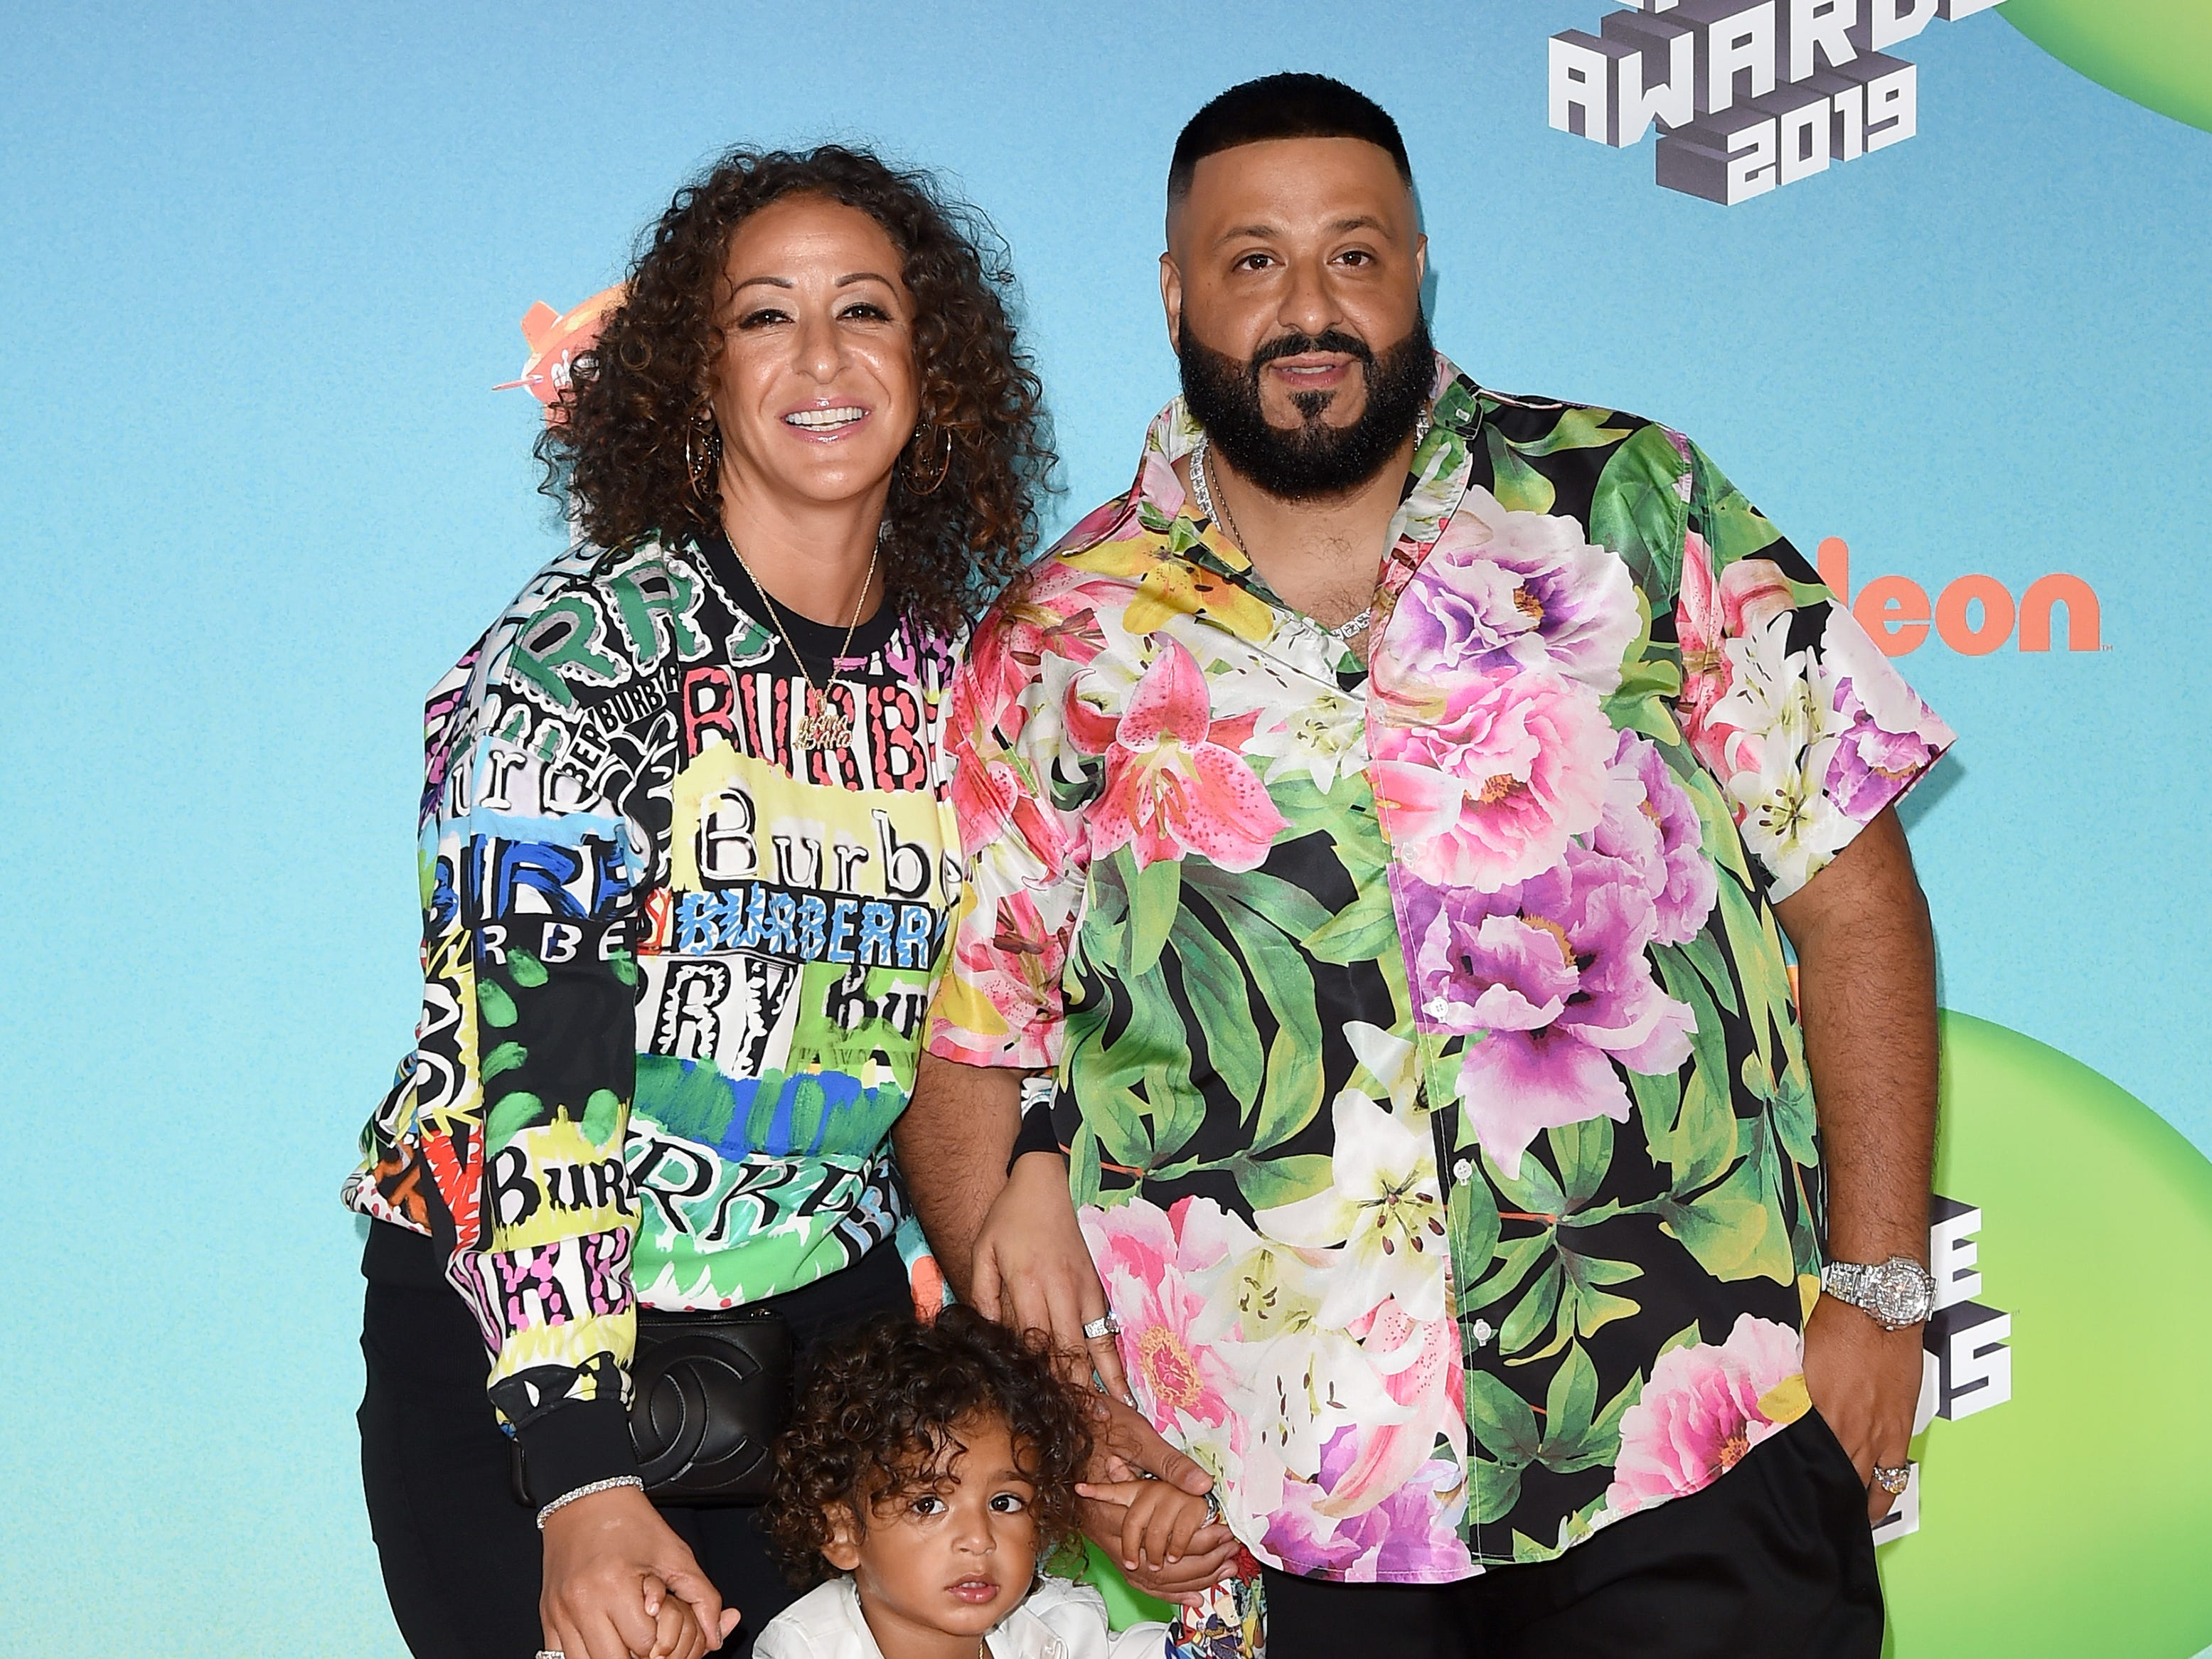 LOS ANGELES, CALIFORNIA - MARCH 23: (L-R) Nicole Tuck, Asahd Tuck Khaled, and DJ Khaled attend Nickelodeon's 2019 Kids' Choice Awards at Galen Center on March 23, 2019 in Los Angeles, California. (Photo by Axelle/Bauer-Griffin/FilmMagic) ORG XMIT: 775314636 ORIG FILE ID: 1137876197